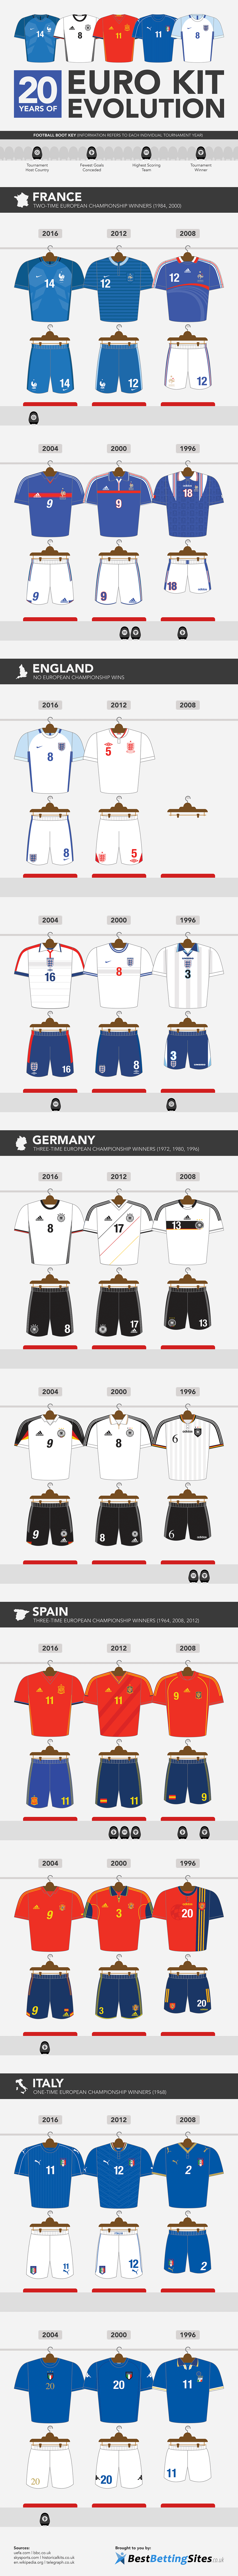 20 Years of Euro Kit Evolution